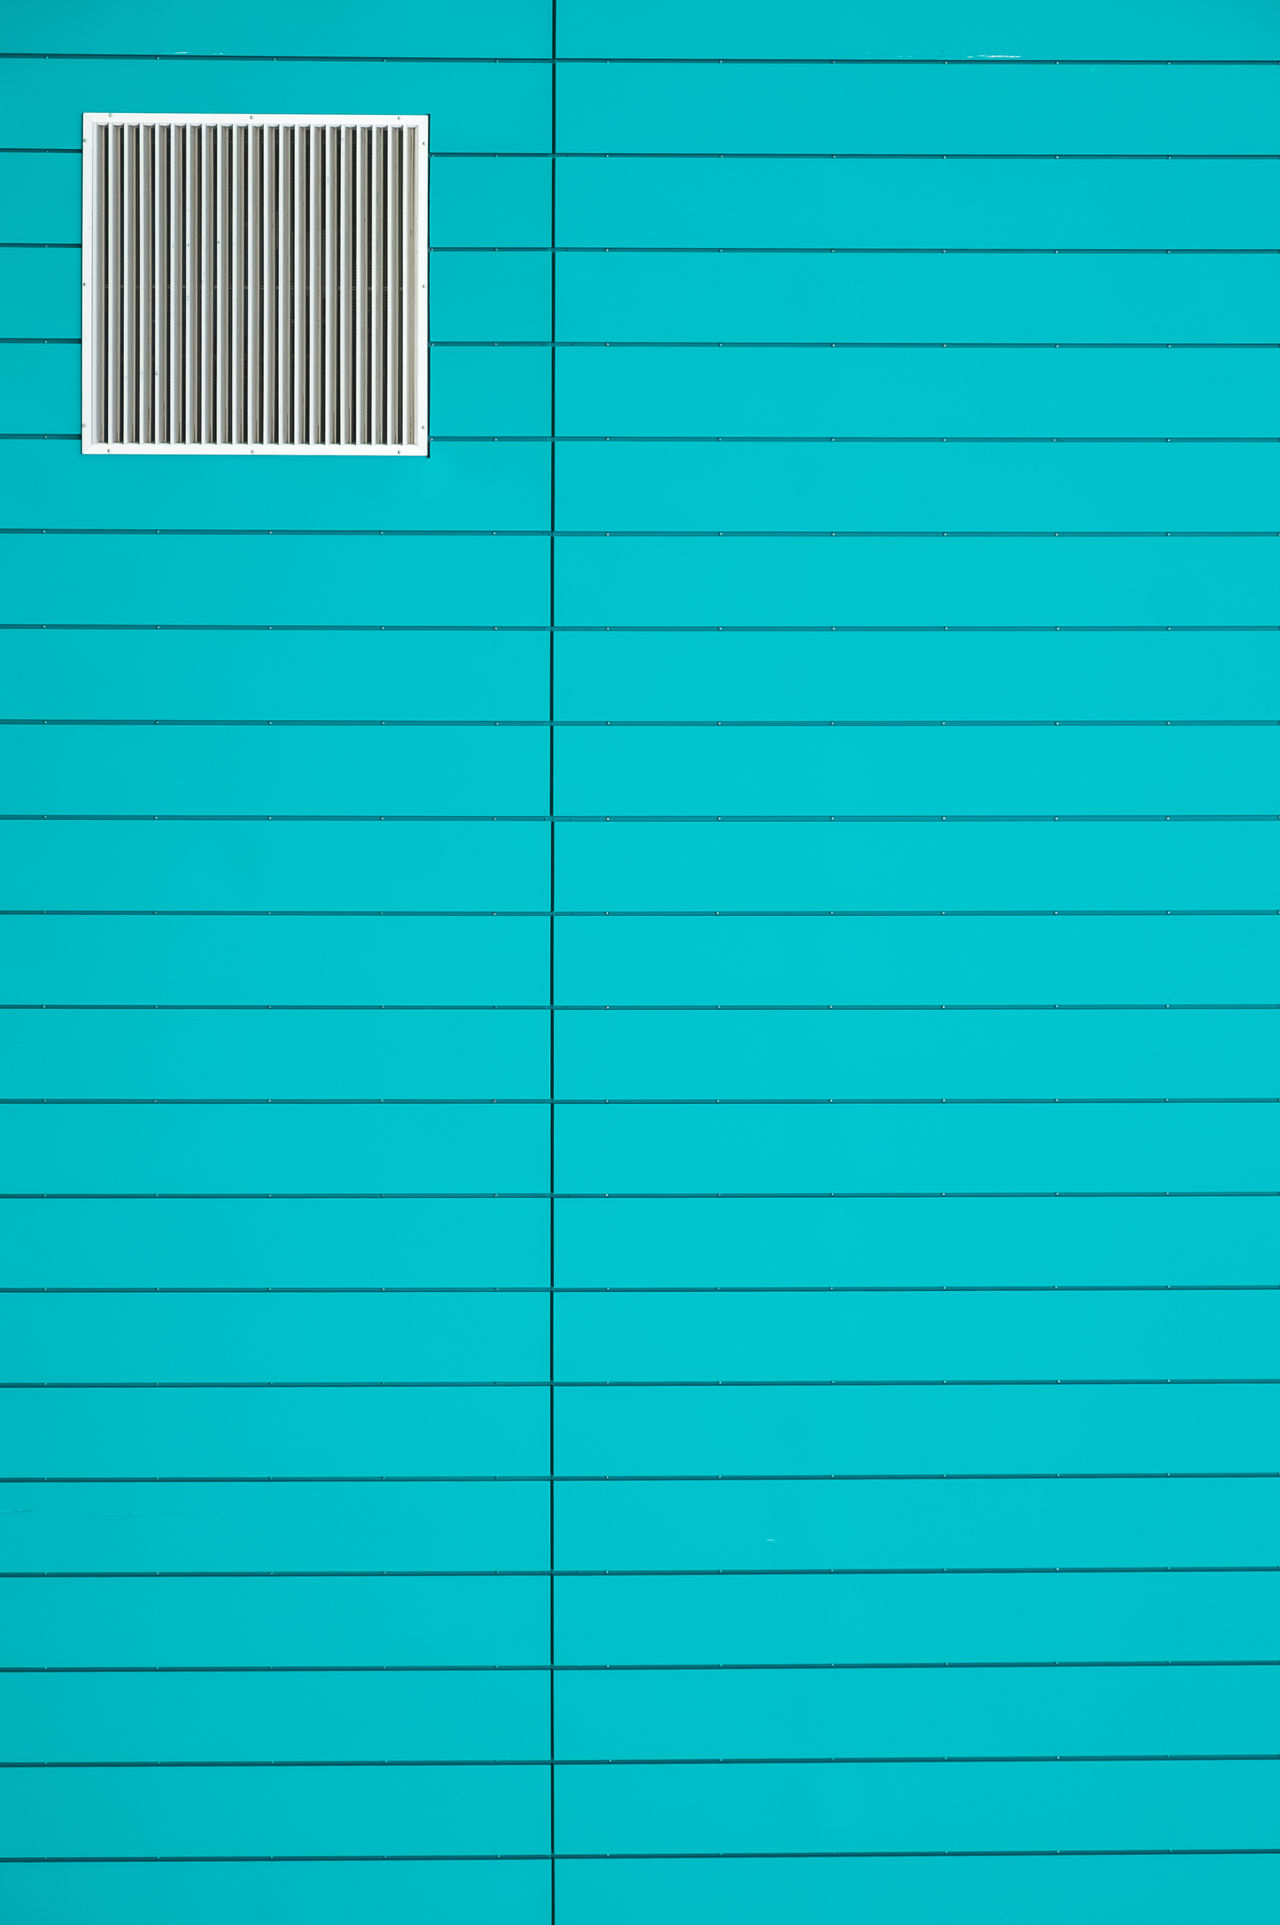 Window on turquoise wall